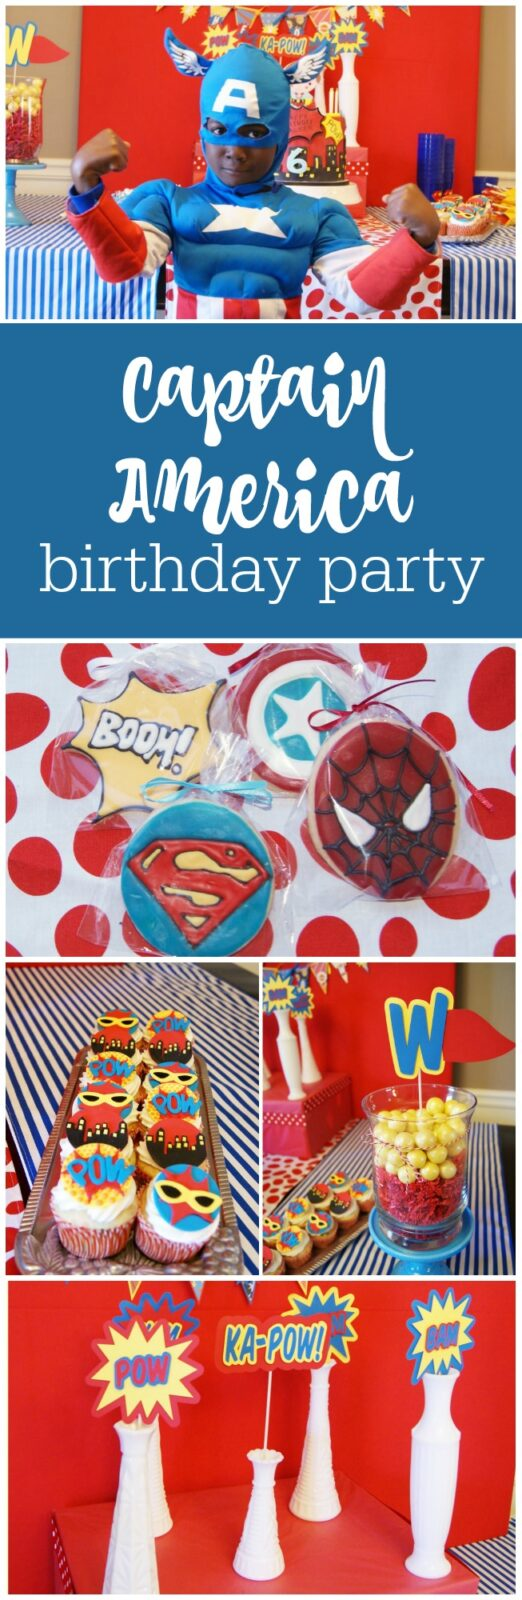 Captain America 6th birthday party by Sweet Georgia Sweet featured on The Party Teacher